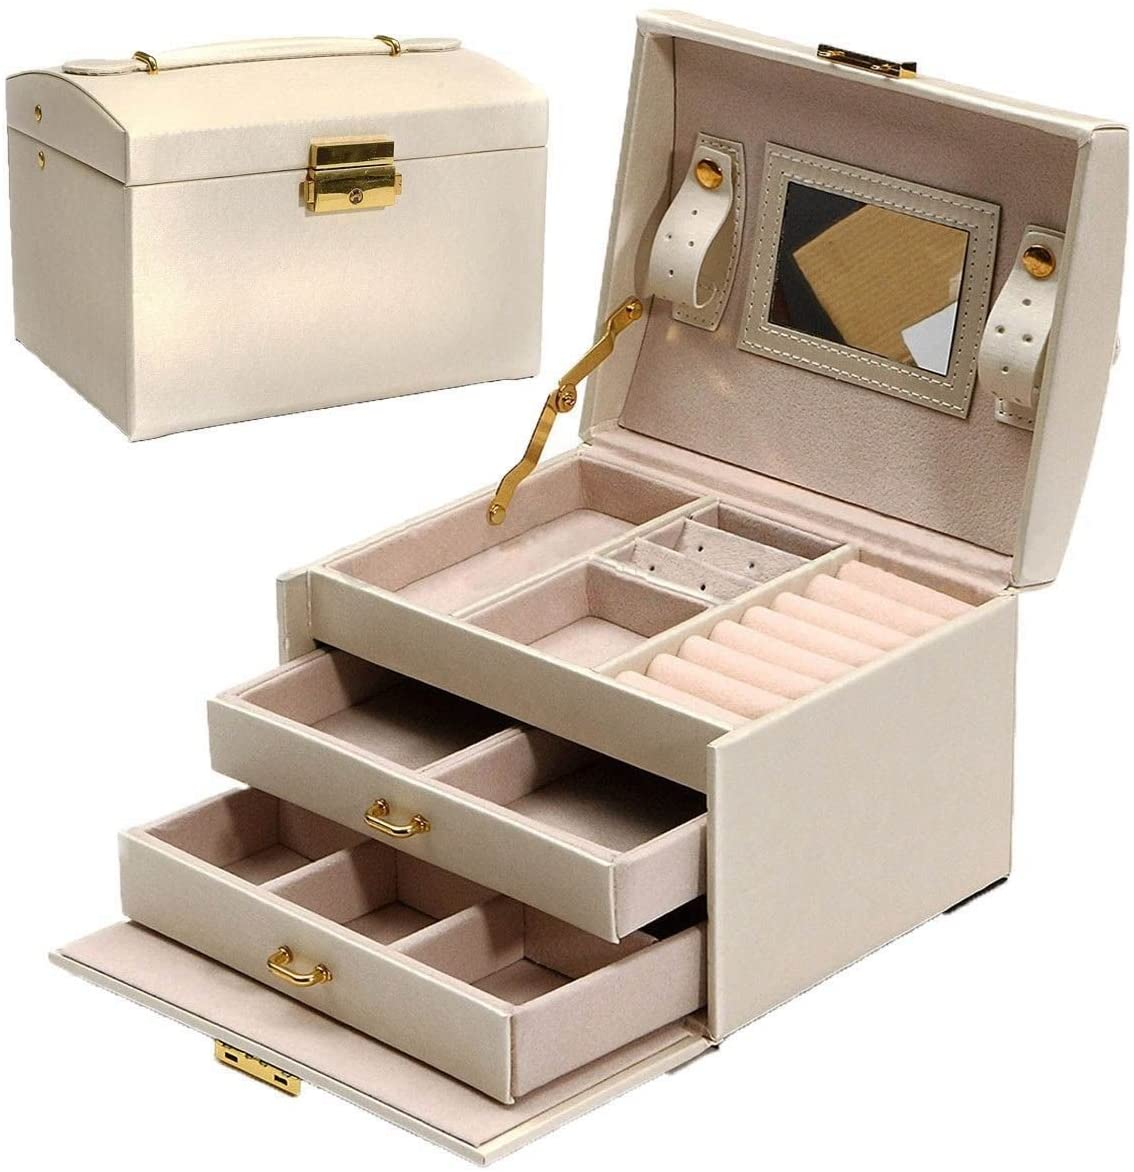 HQLCX Jewelry Packaging & Display Box Armoire Dressing Chest with Clasps Bracelet Ring Organiser Carrying Cases